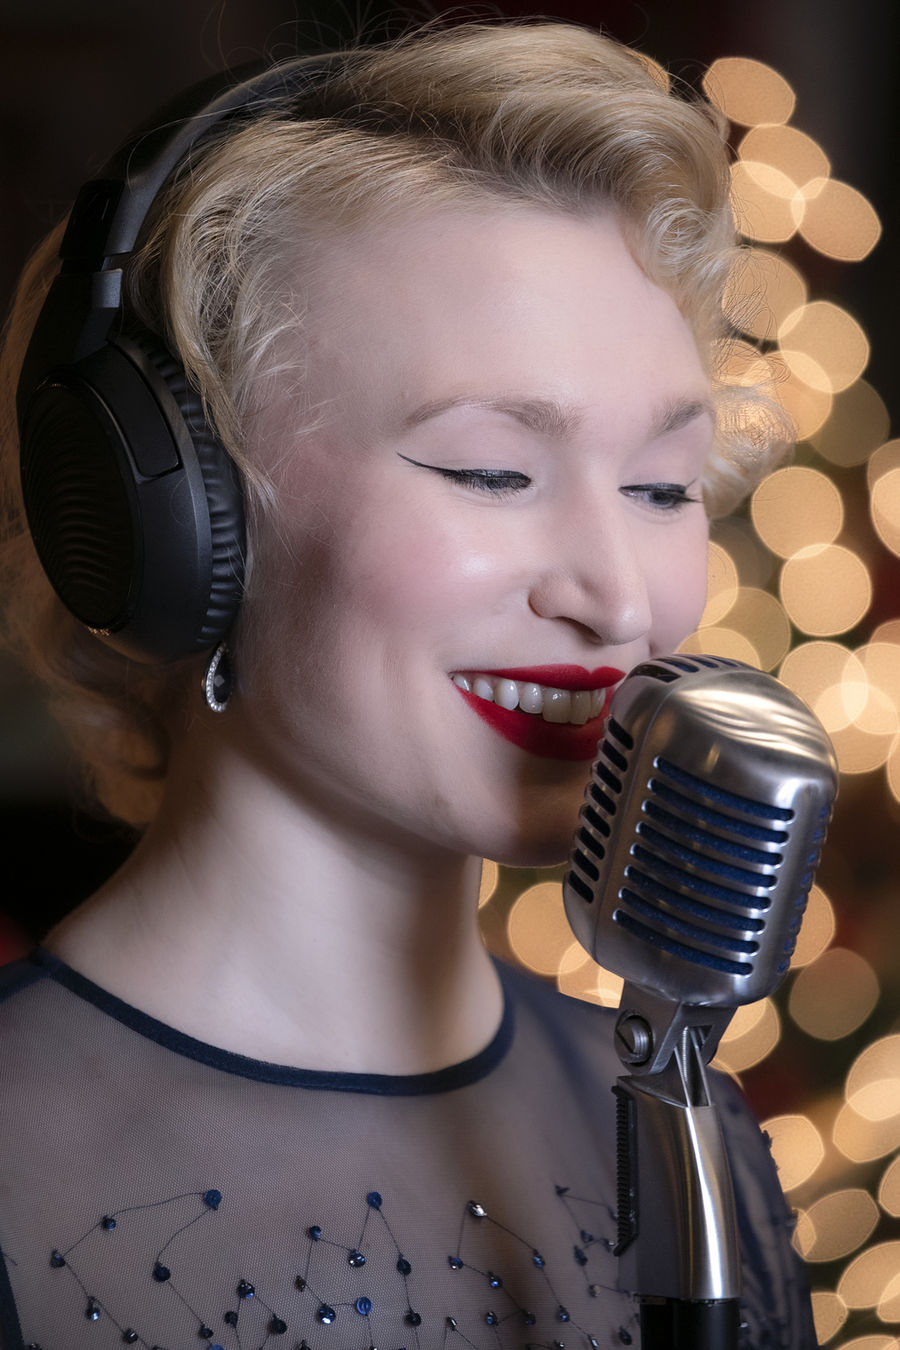 Voices: Voice actor and singer Allyson Briggs